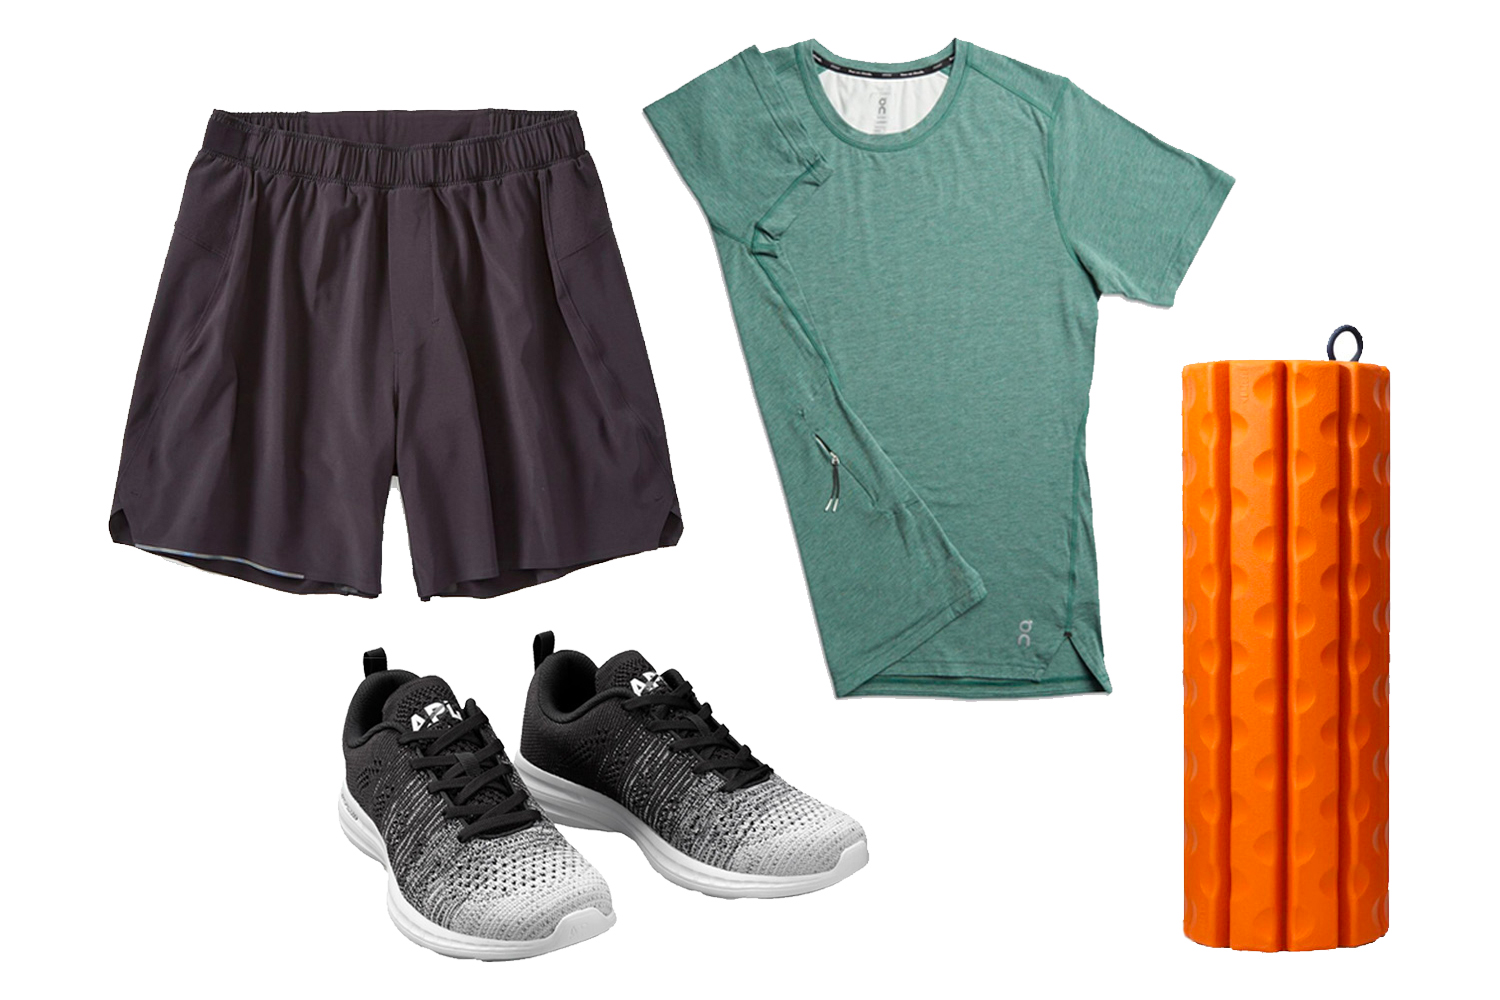 Workout gear for the runner